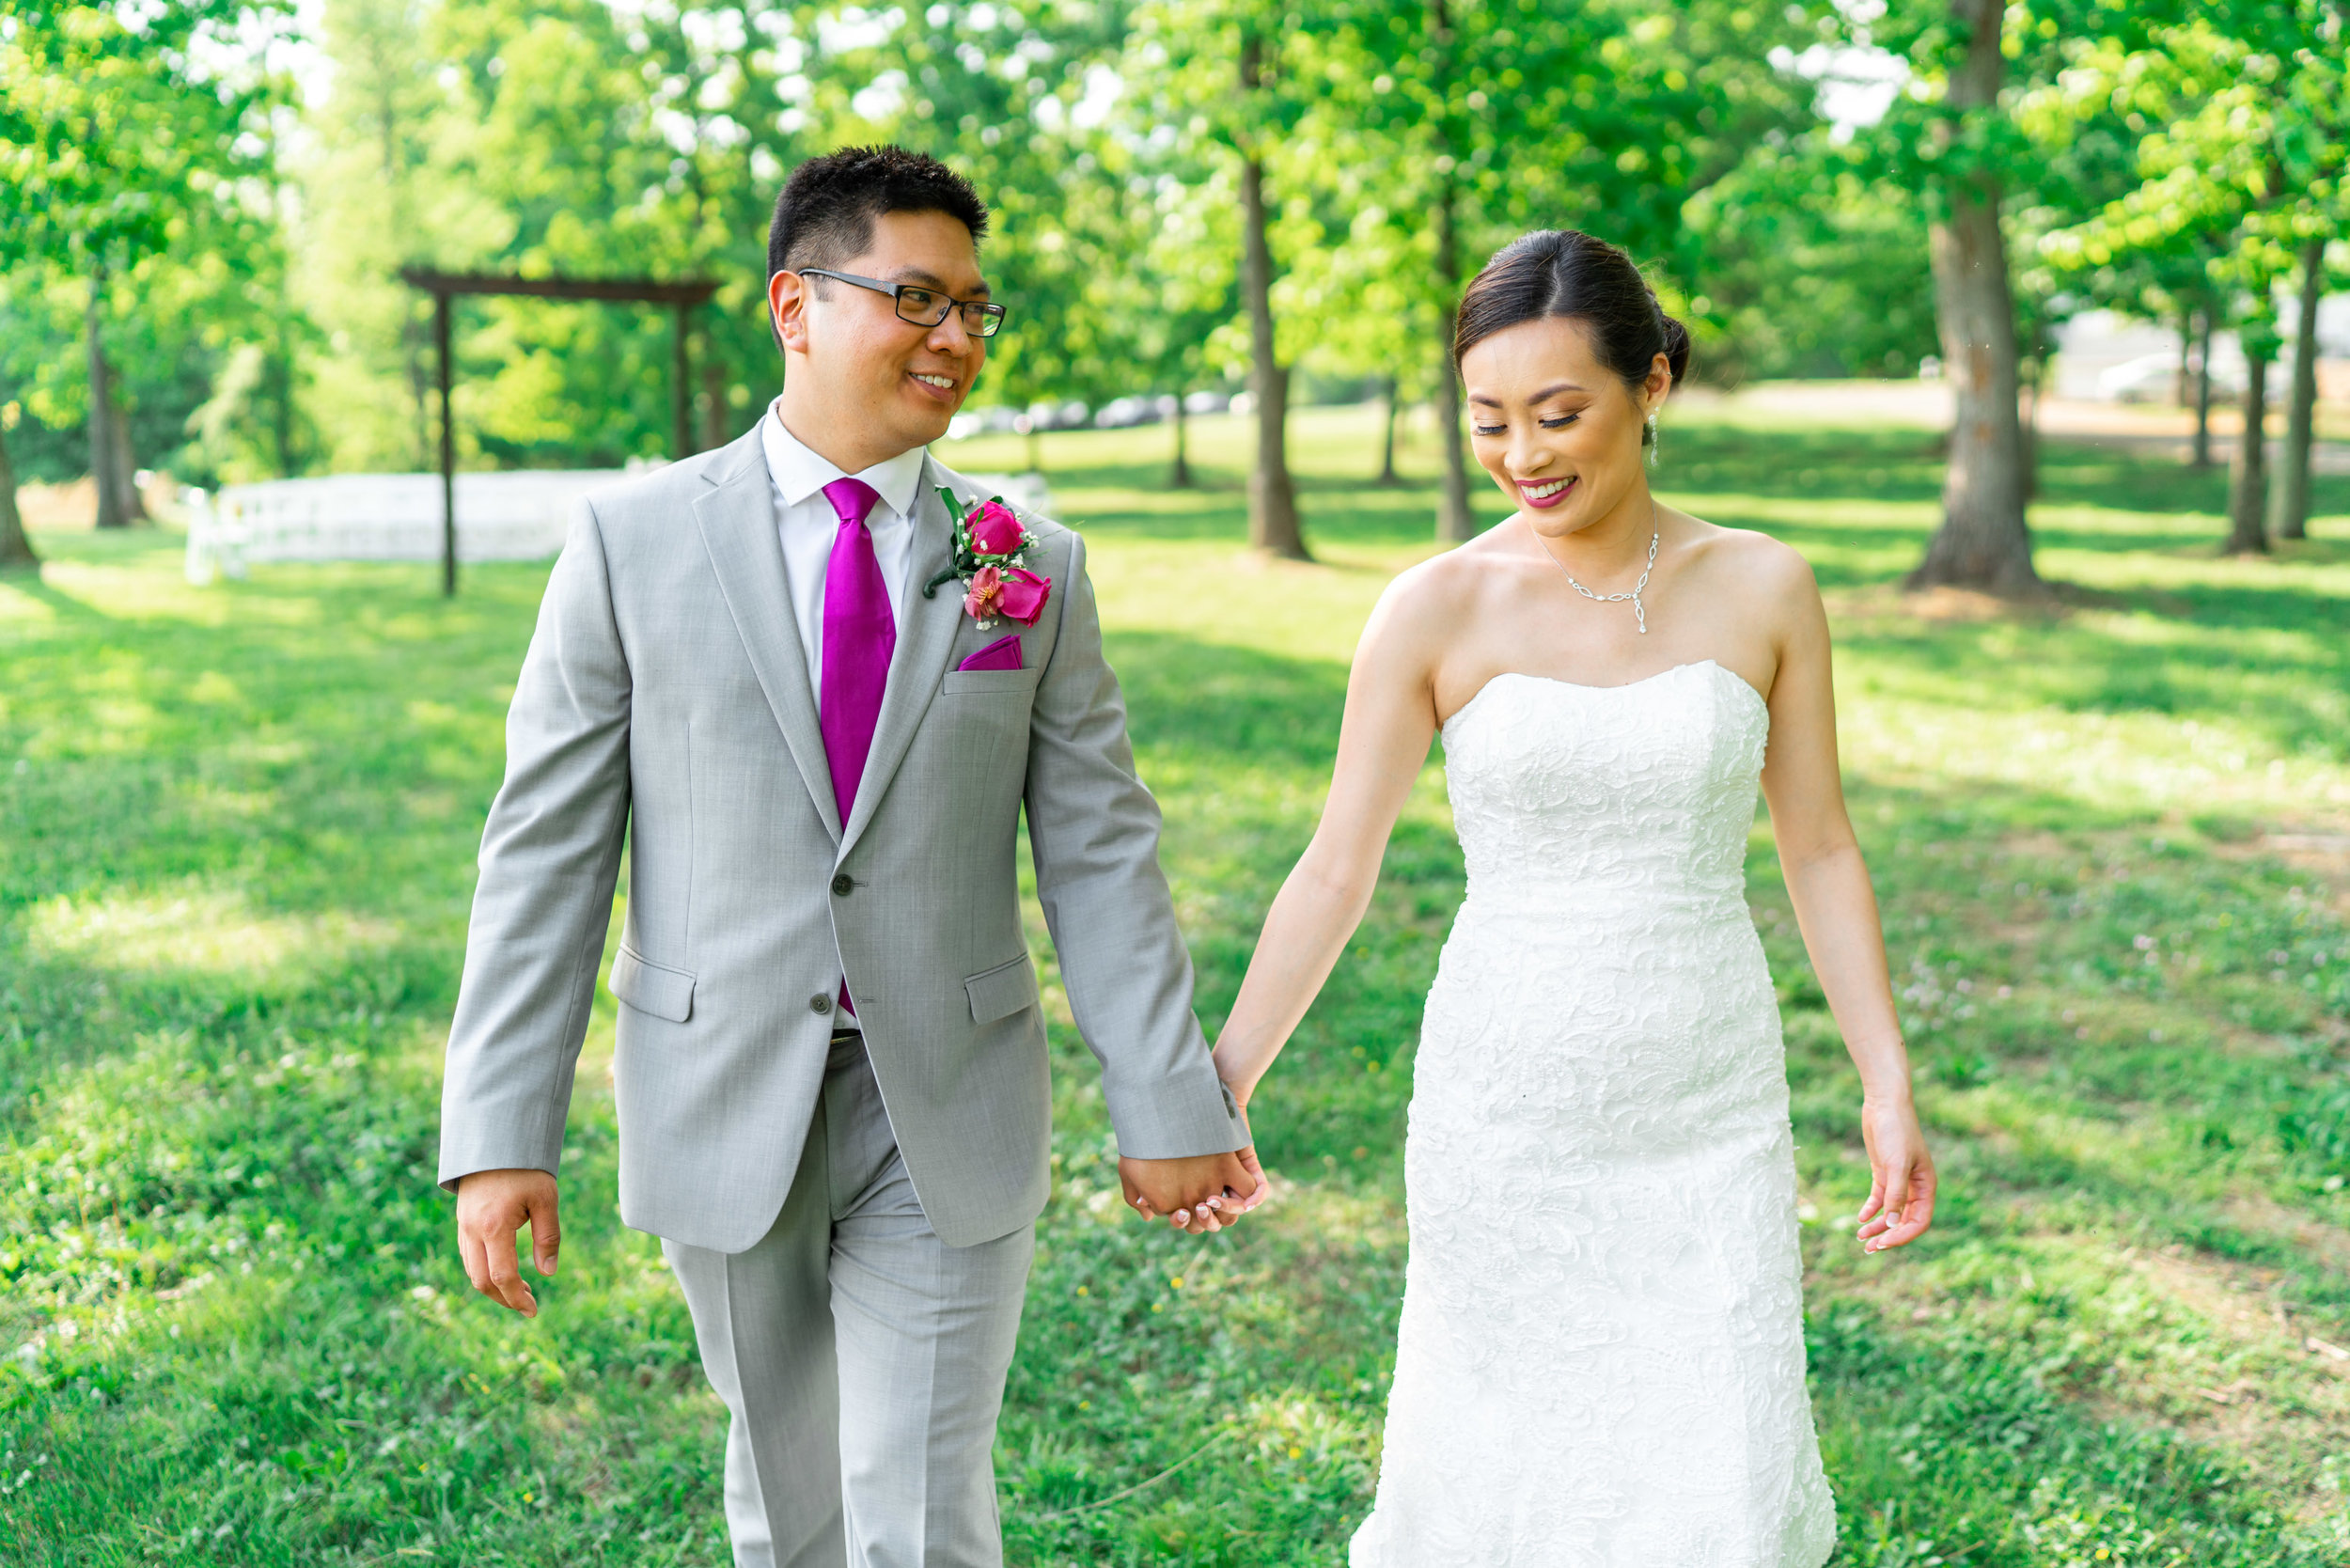 Bride and groom walking and holding hands smiling